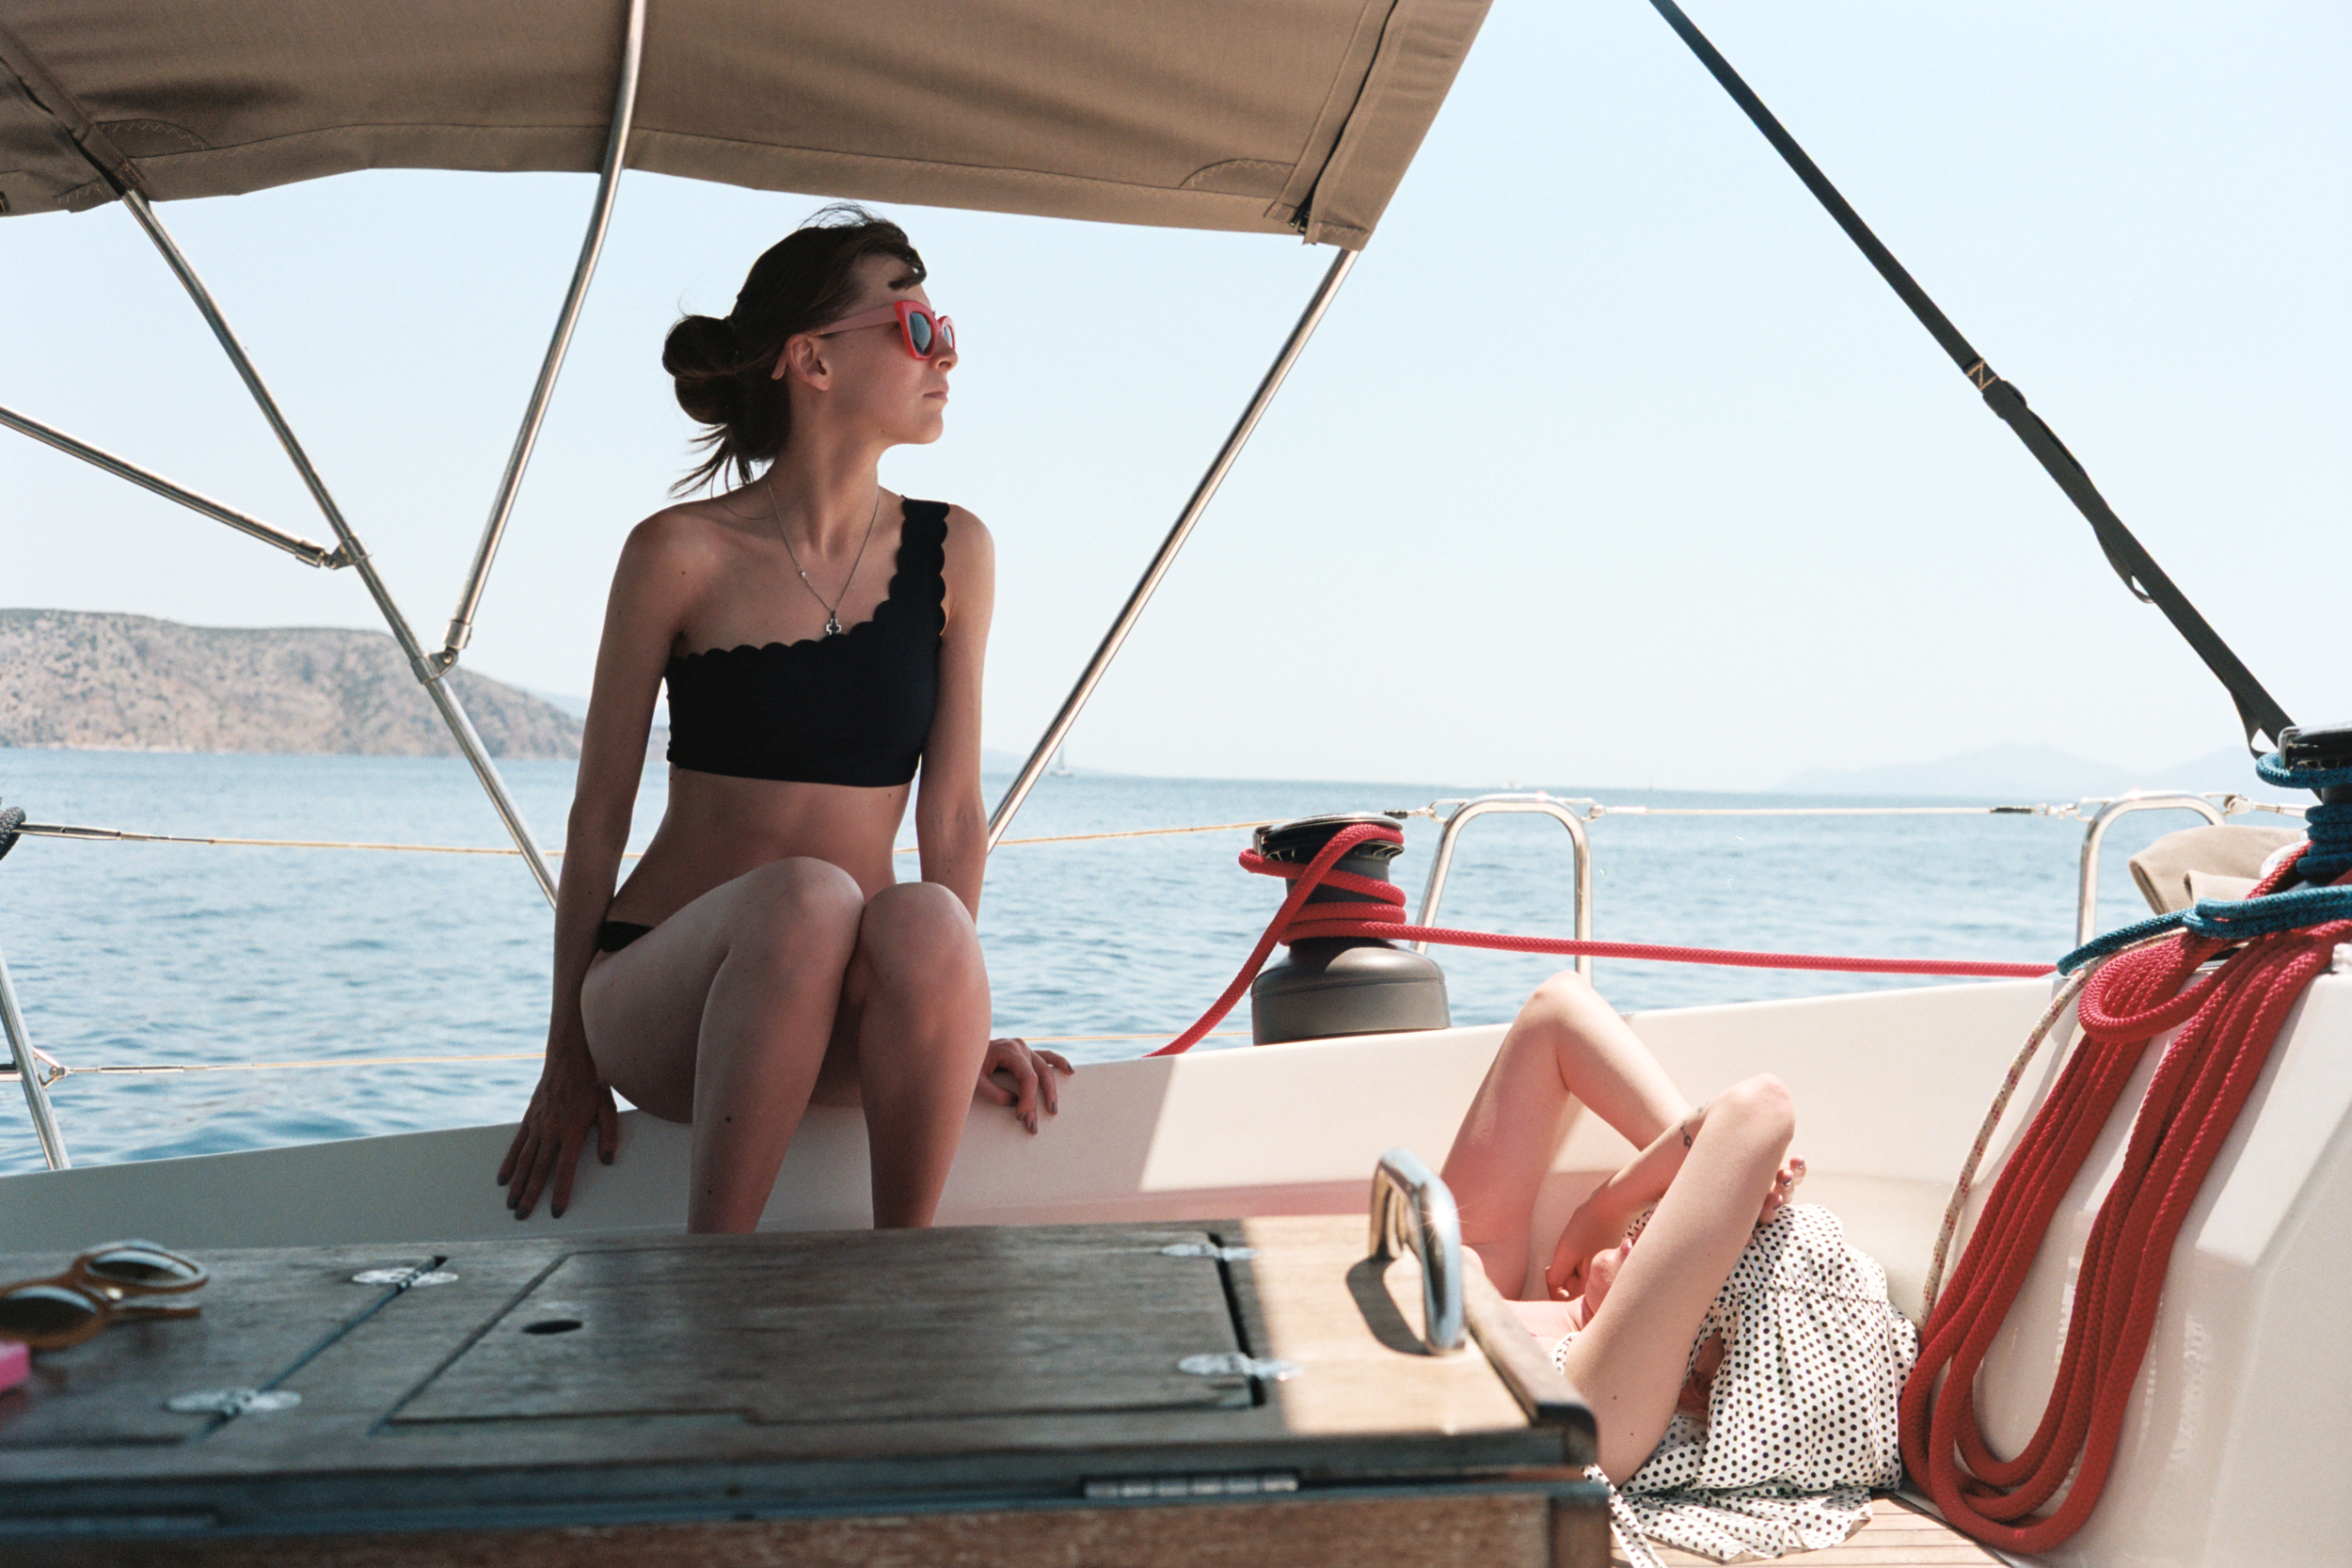 sea_soul_sailing_film-1.jpg